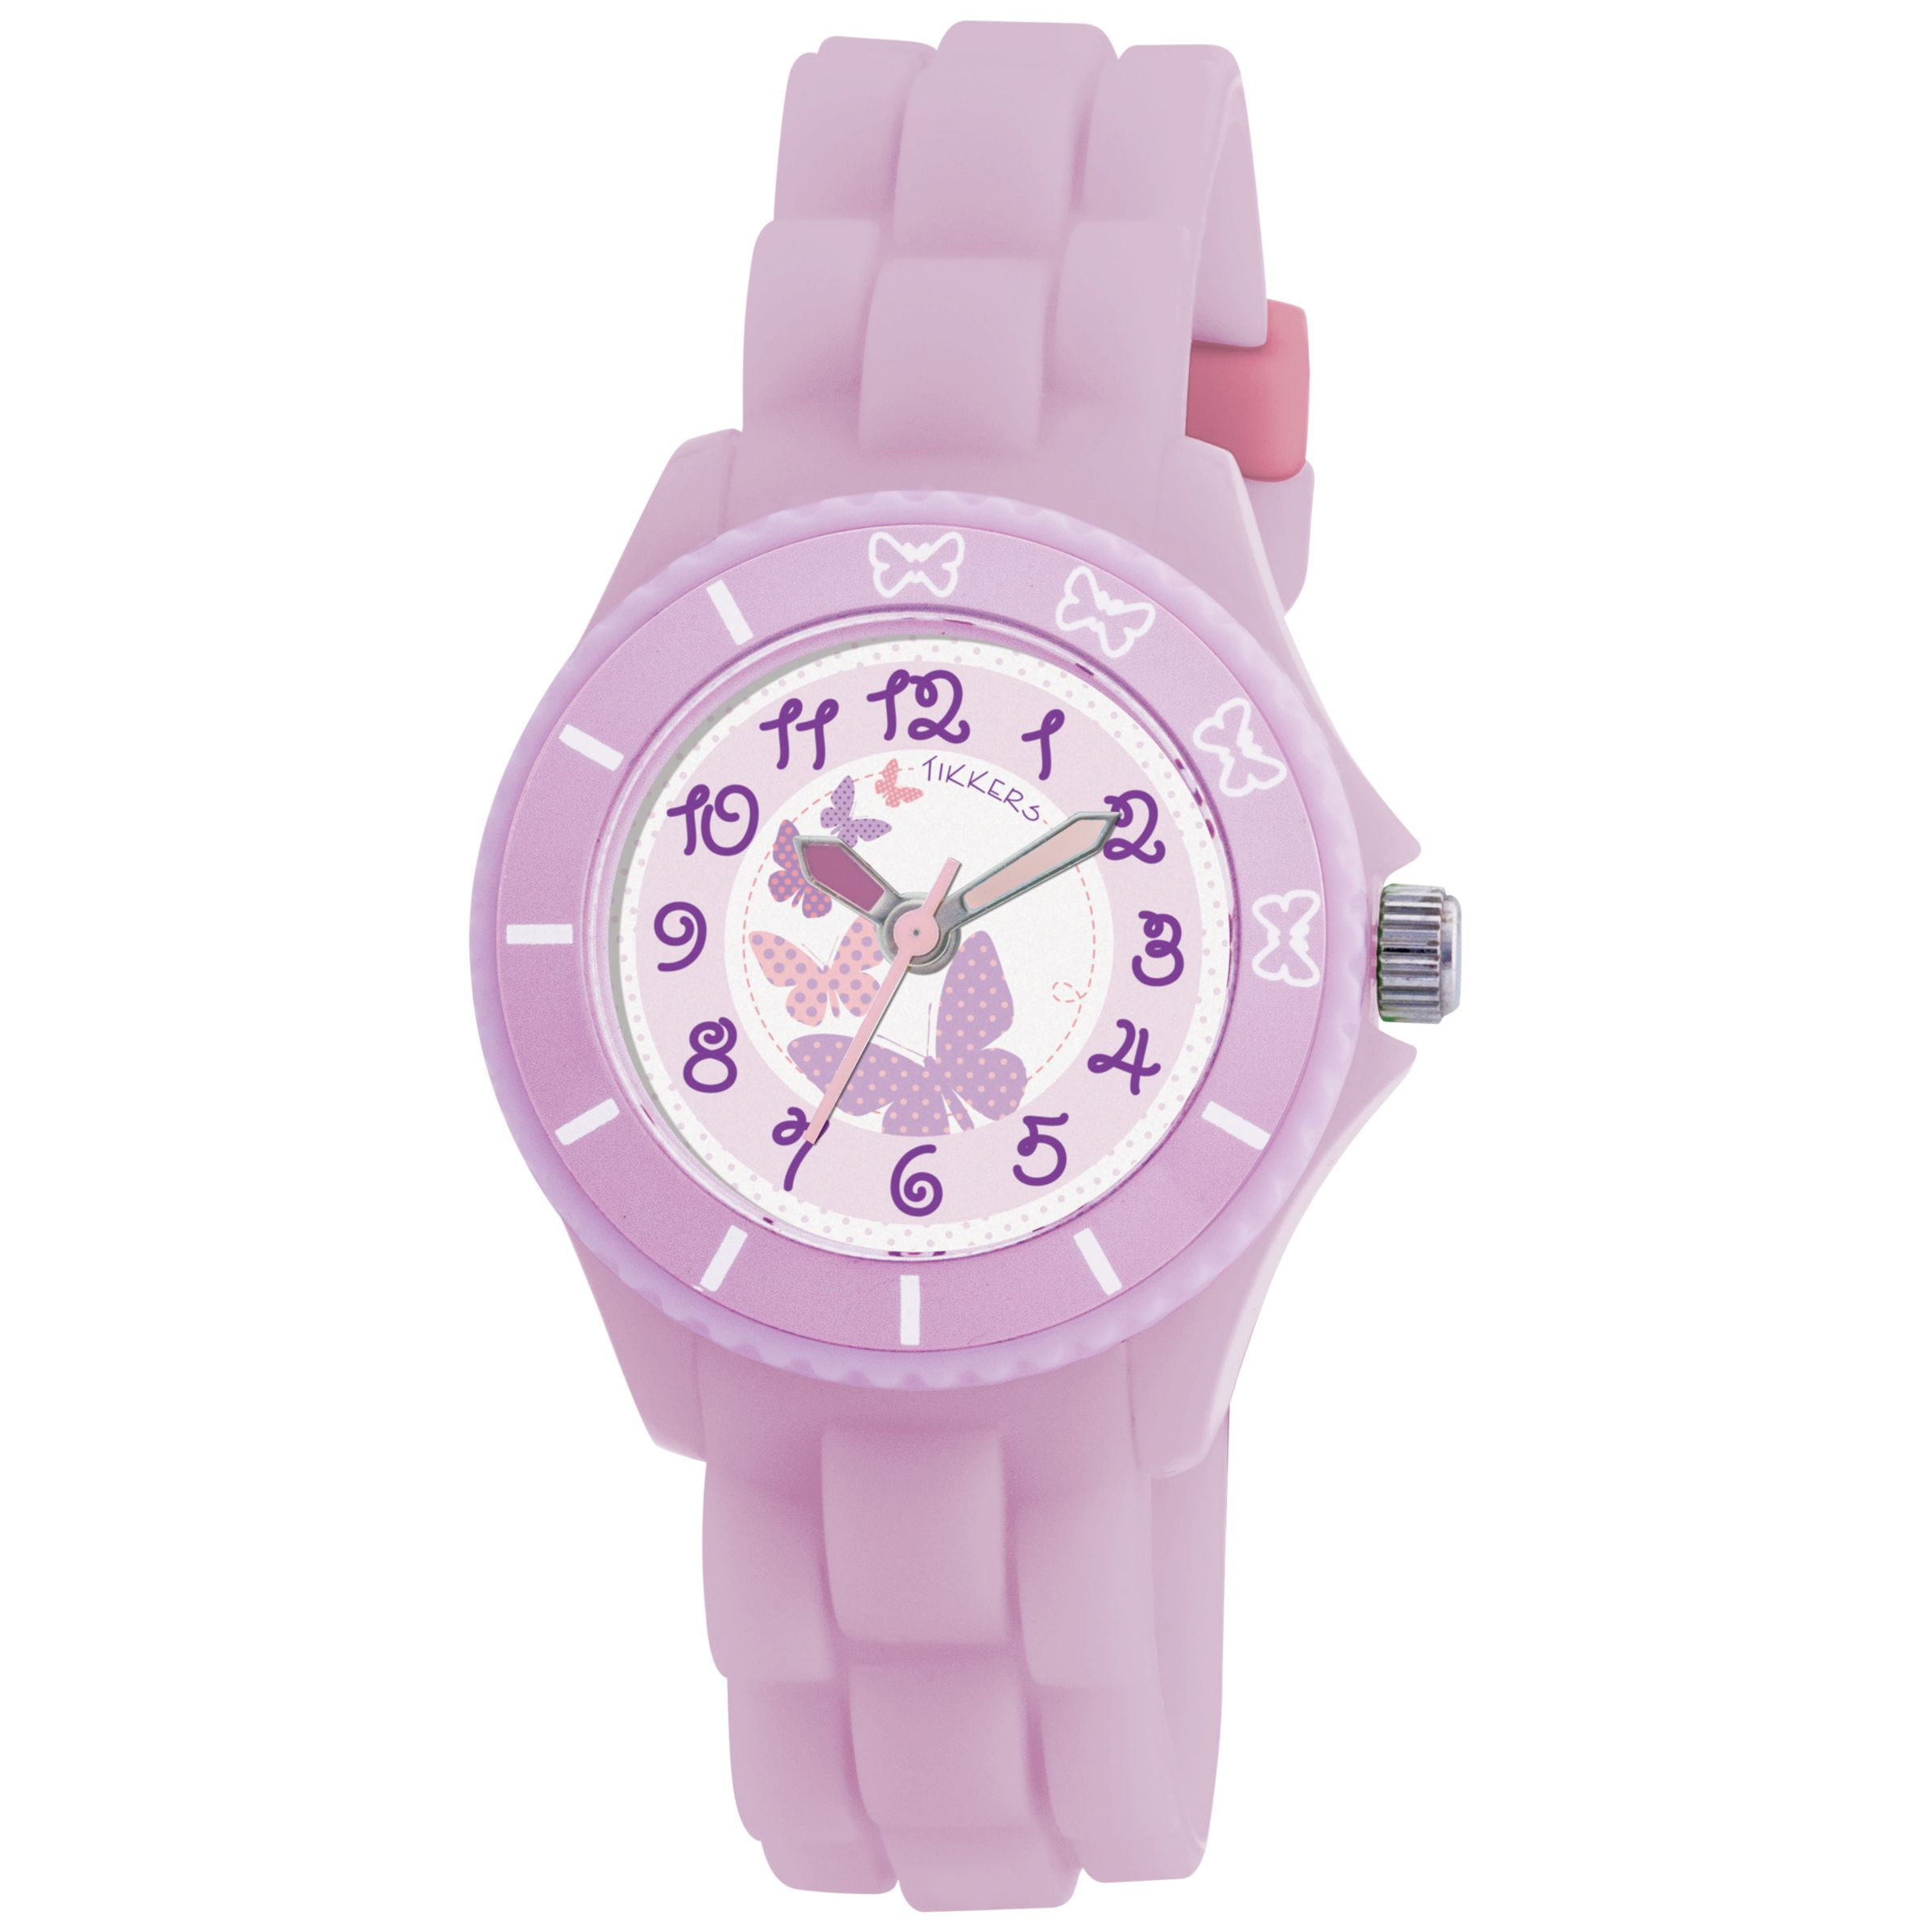 Tikkers TK0020 Kids Butterfly Rubber Strap Watch, Lavender